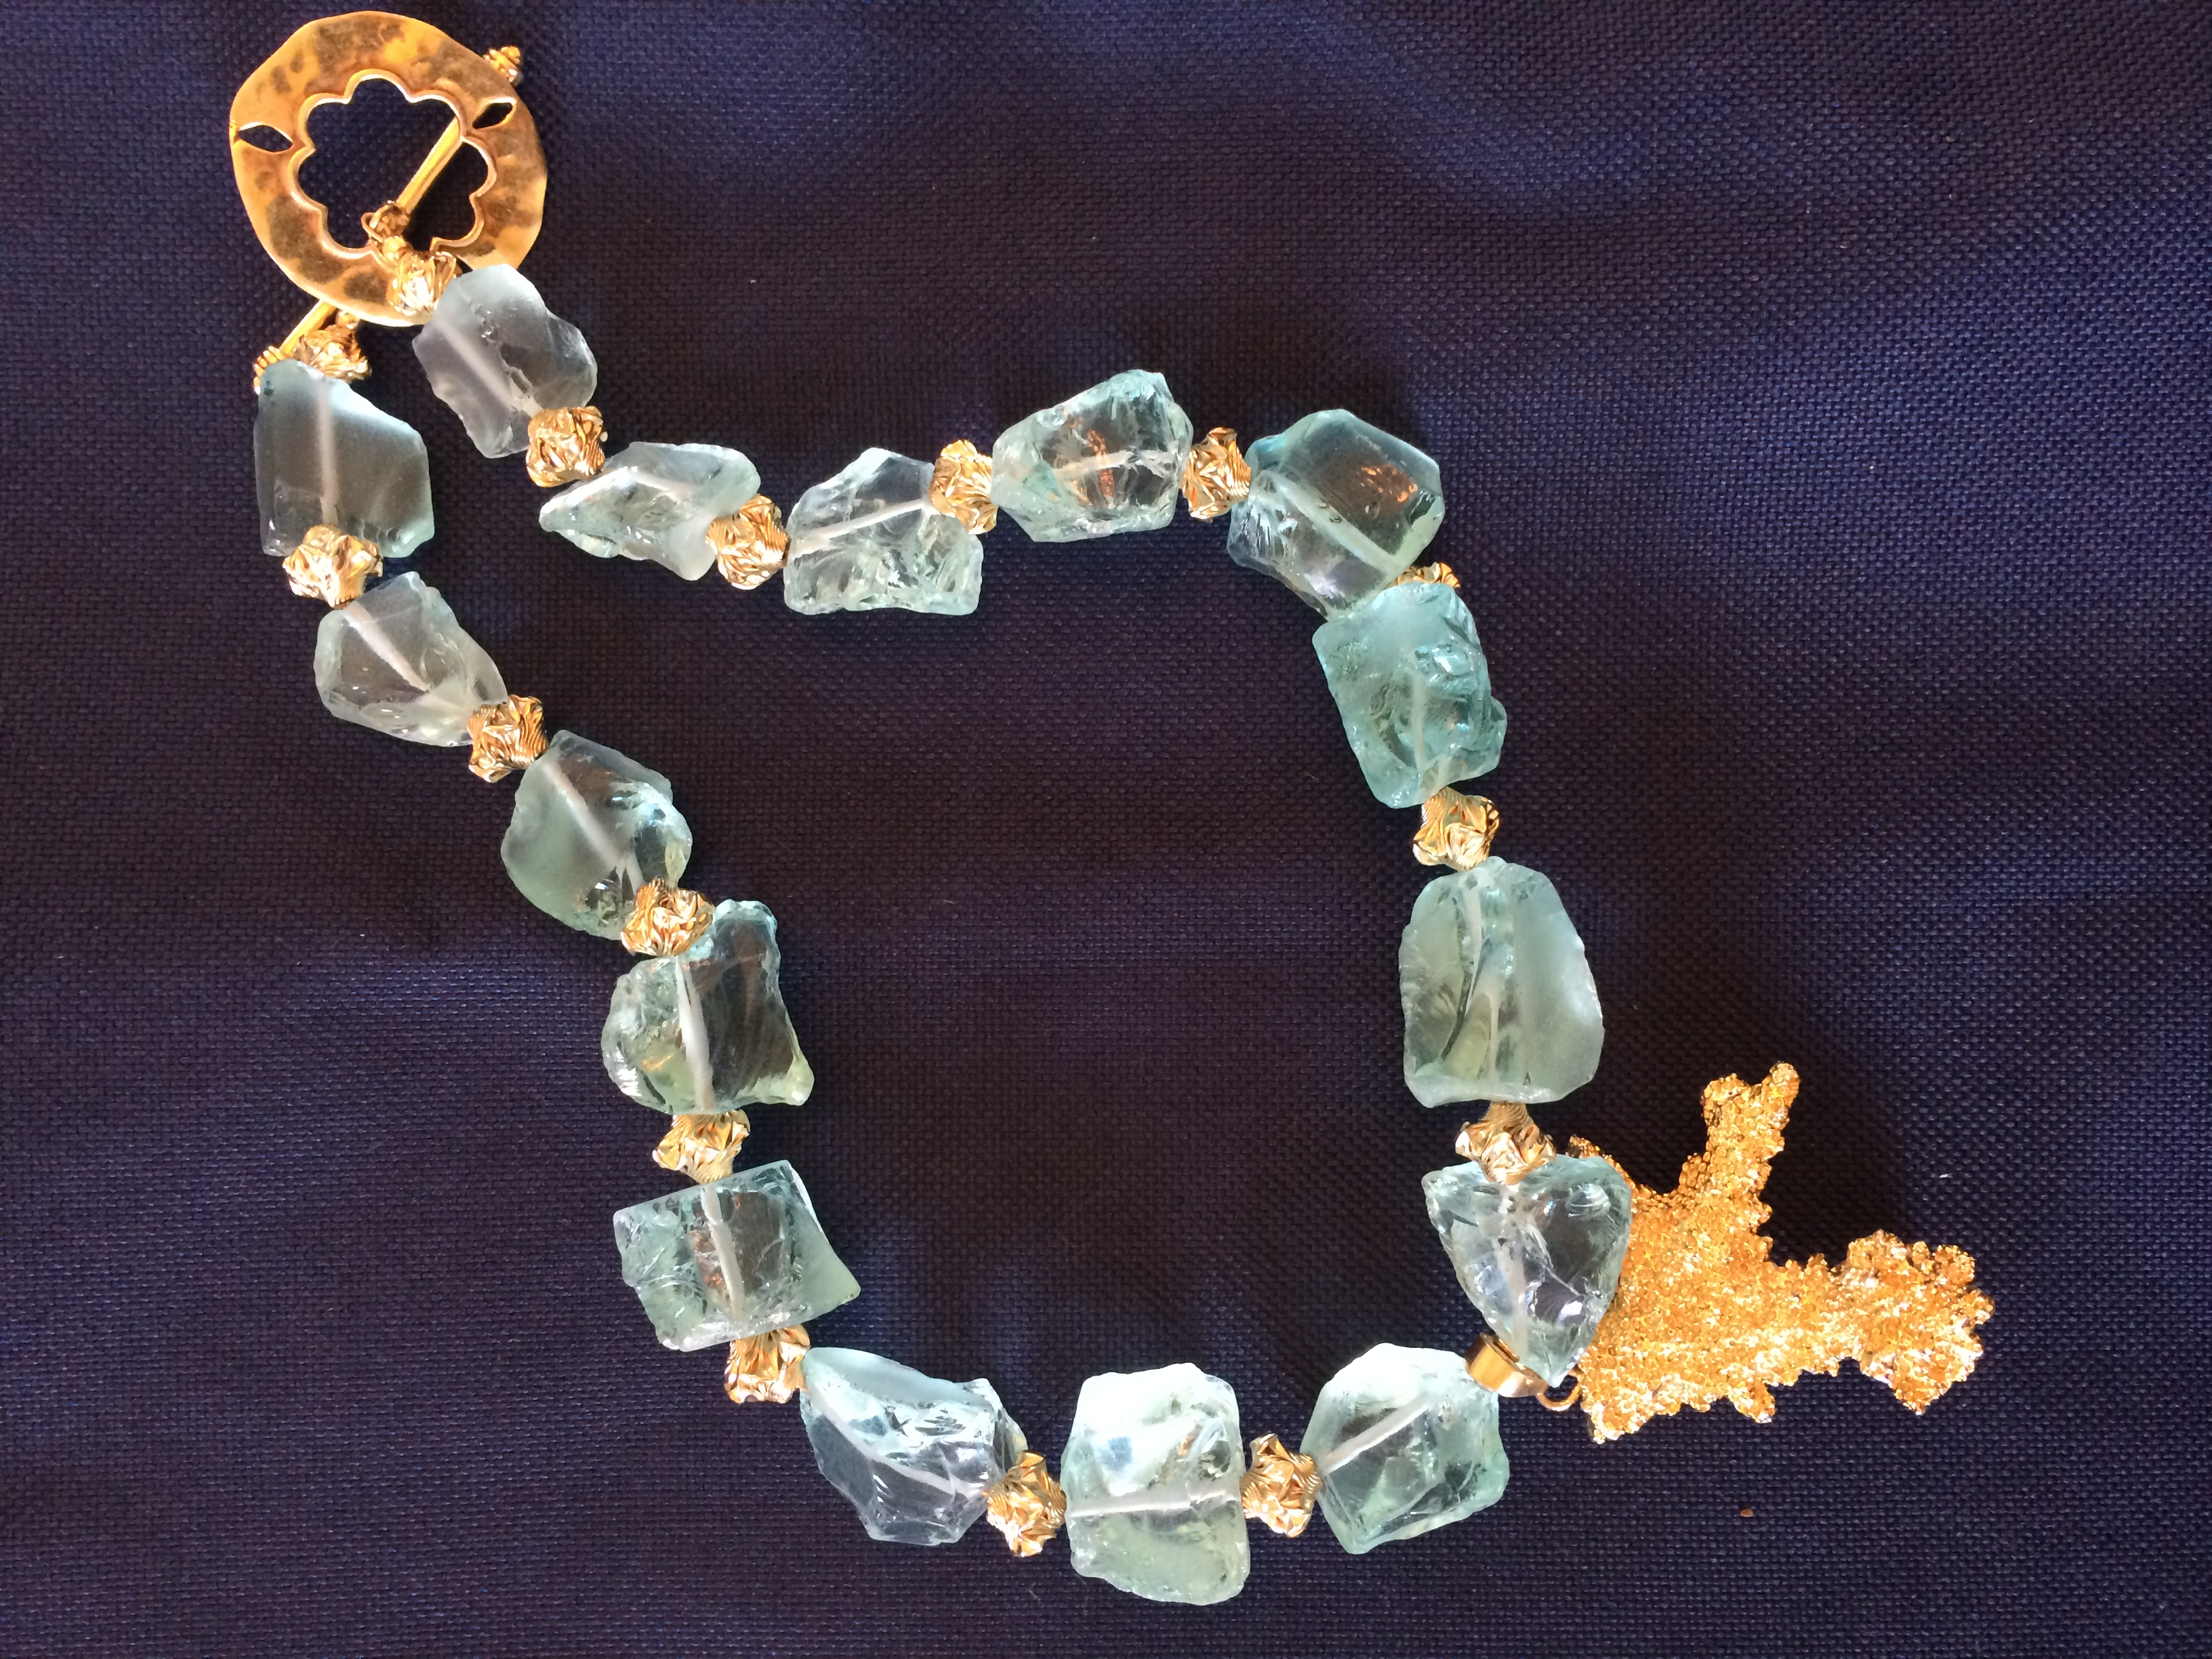 Joaillerie by NED. Ned Marshall. Fluorite and vermeil necklace. Value: $500.00.